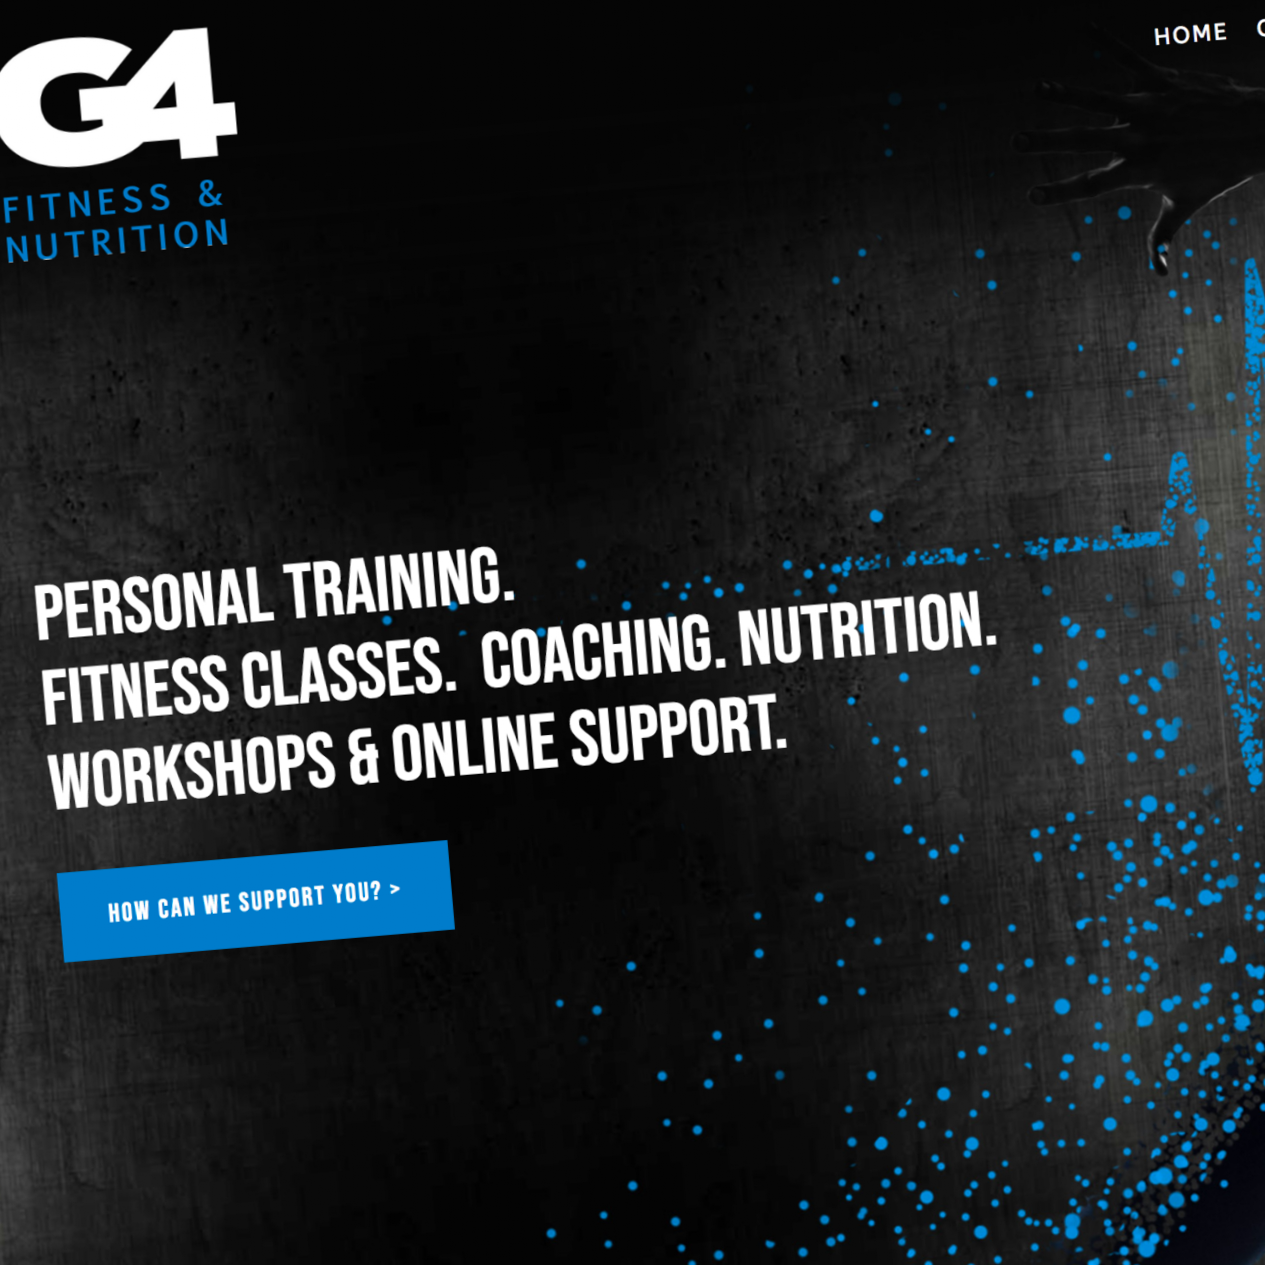 G4-Fitness-Website.png